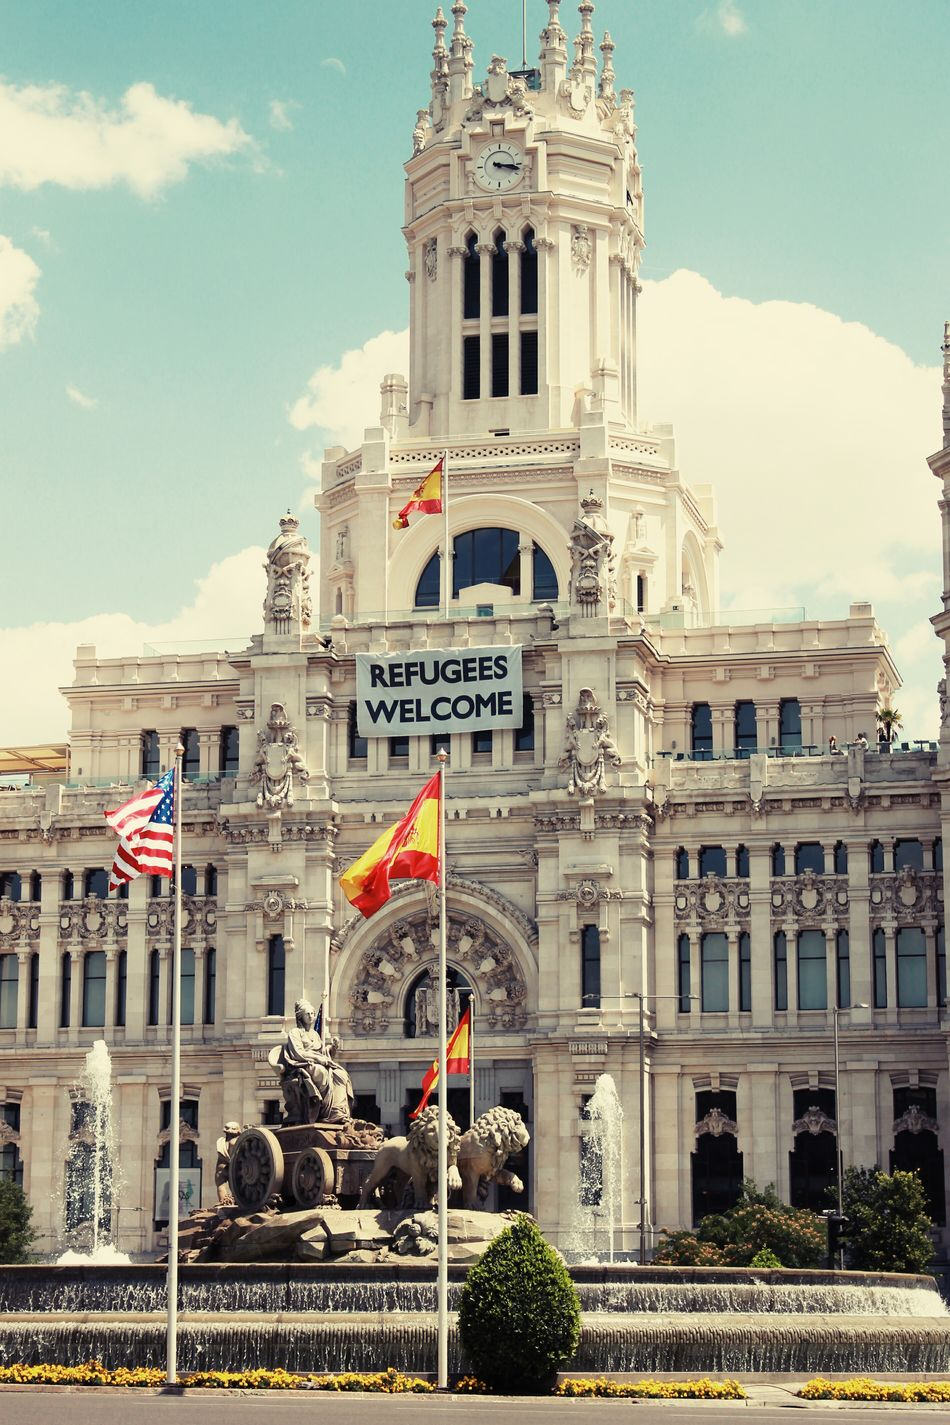 Cibeles Flag City Politics And Government Architecture No People Outdoors Madrid SPAIN Cibeles Cibeles Palace